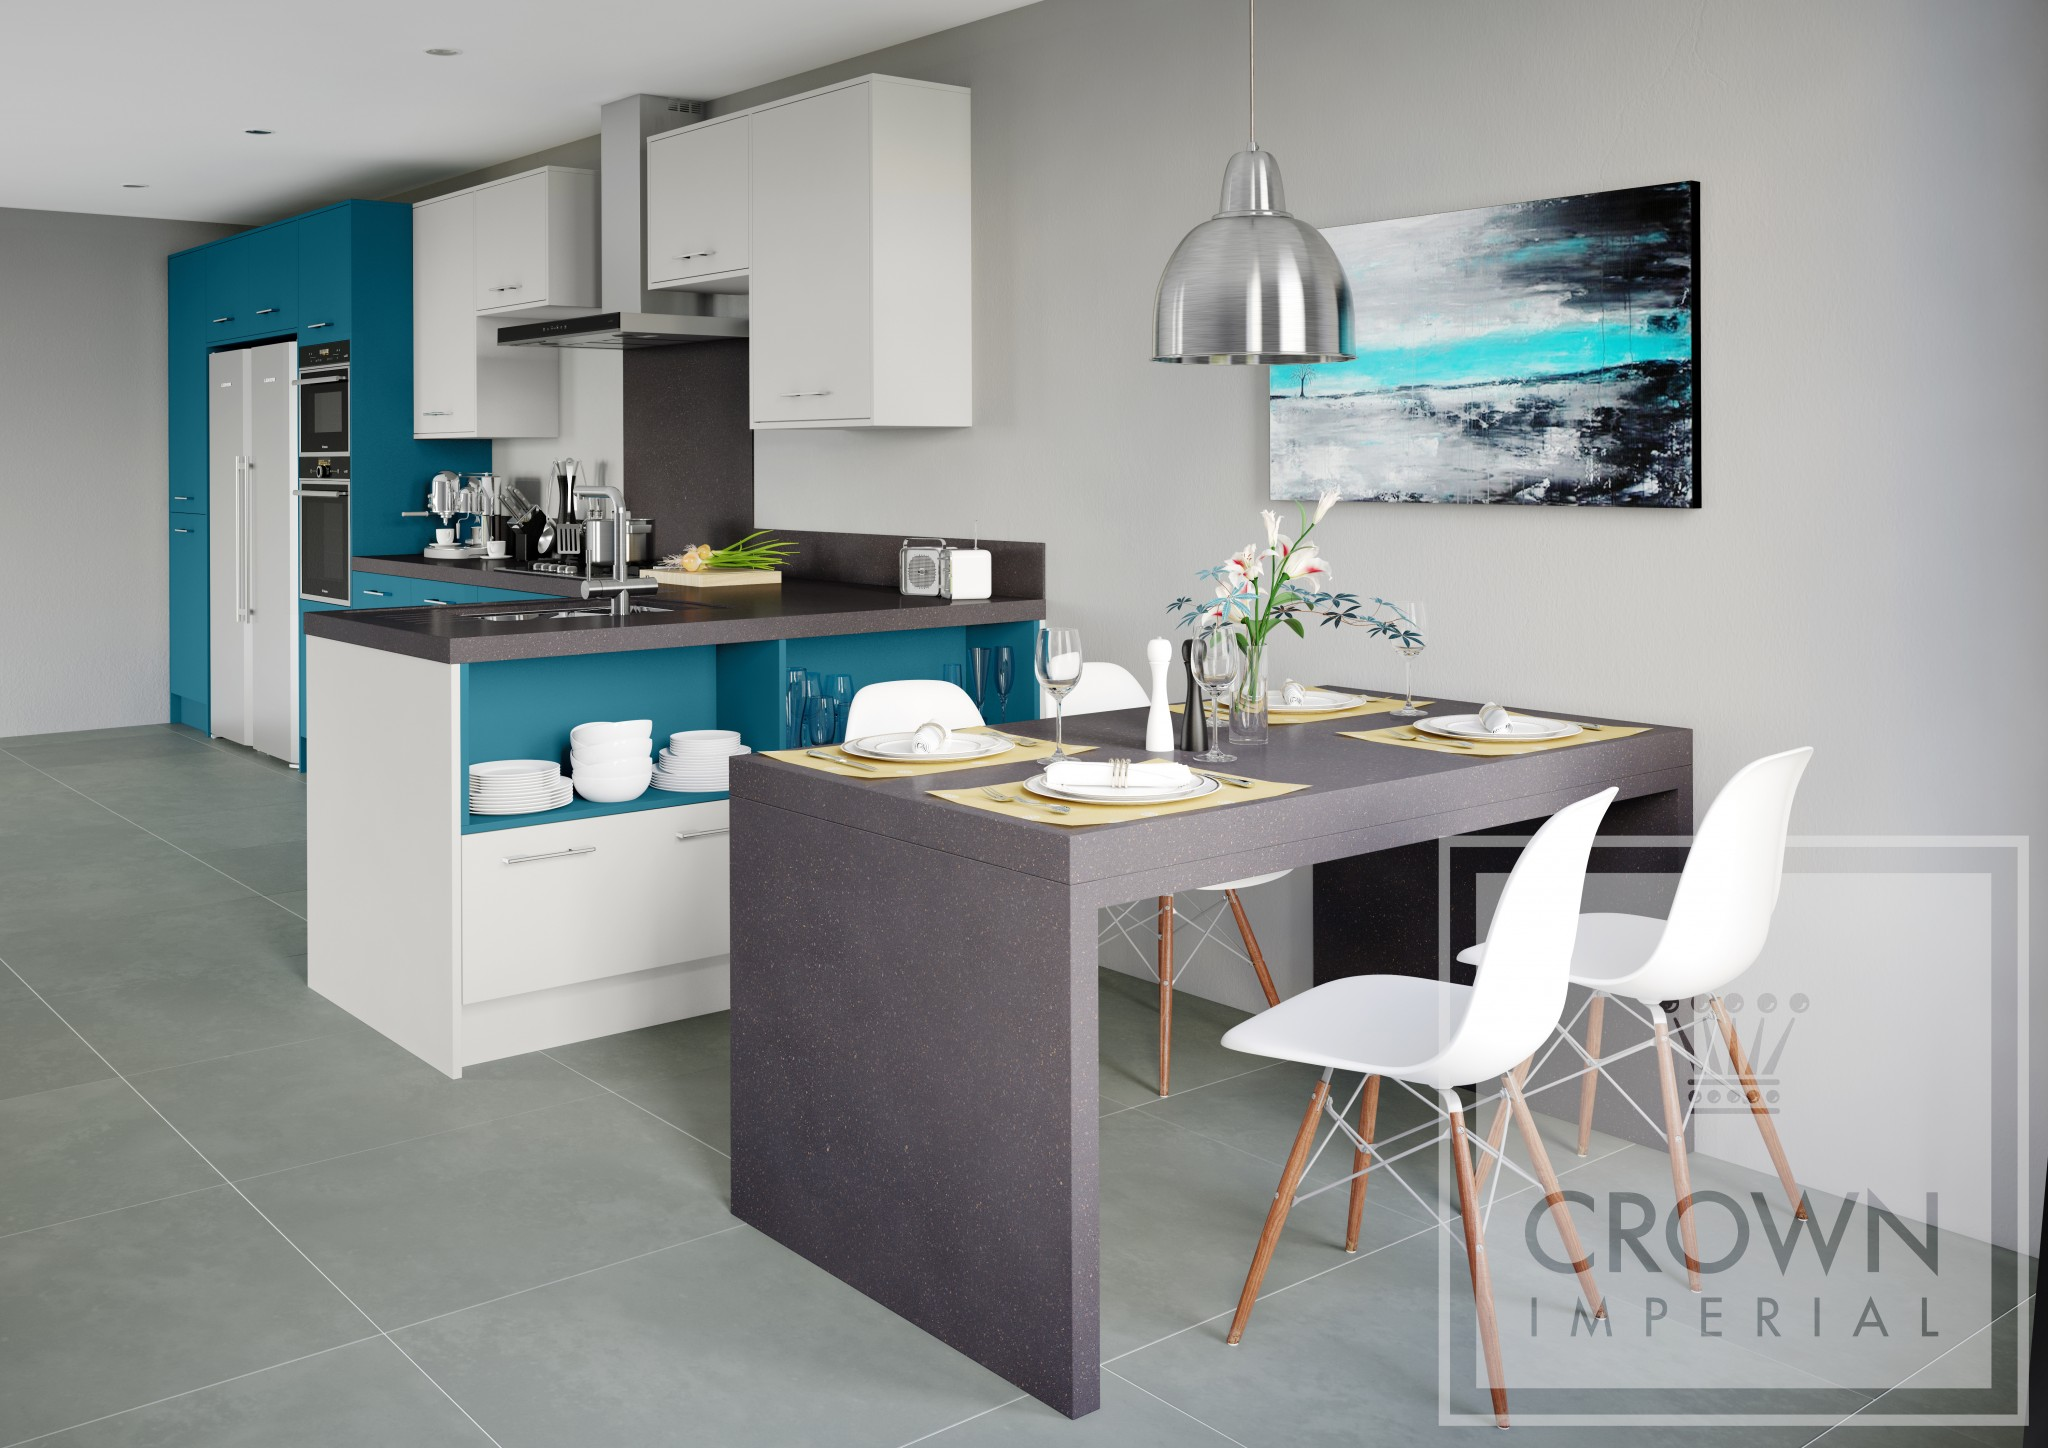 Rococo The Kitchen Centre - Teal and grey kitchen